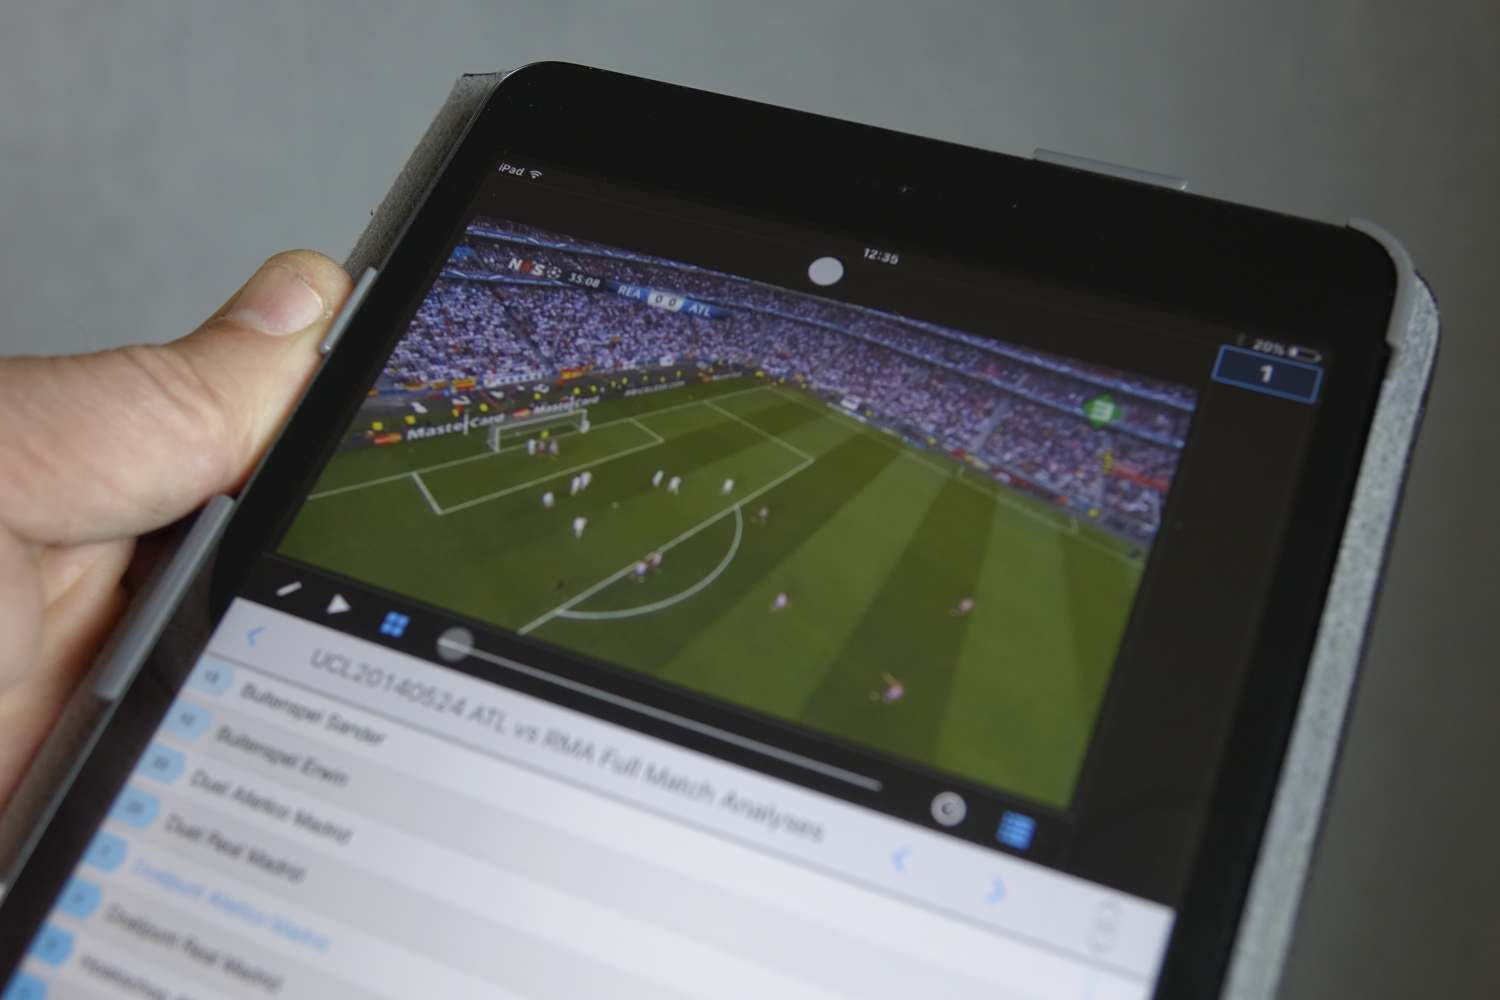 Video analysis on a mobile device.